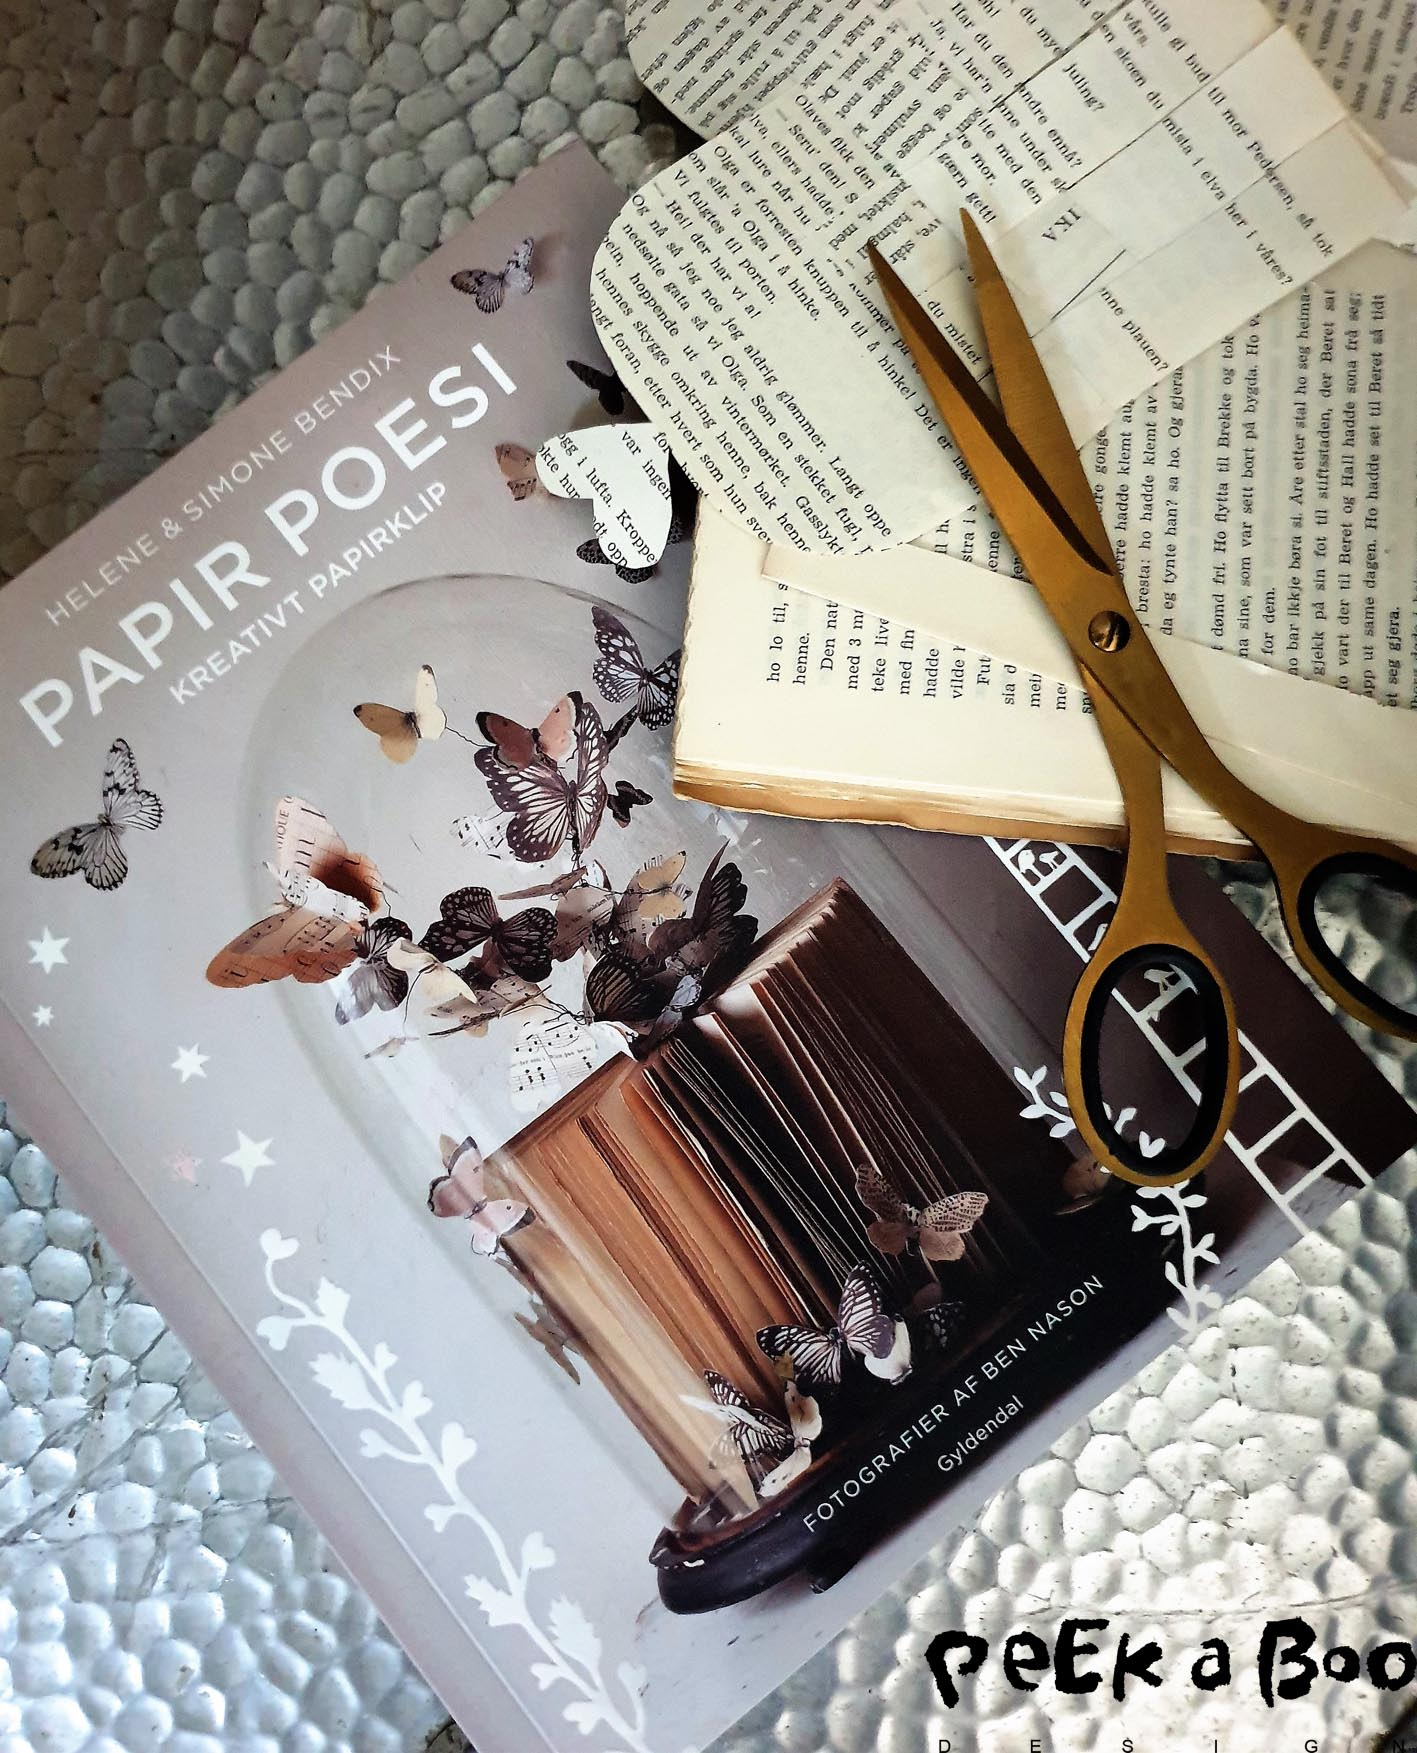 Paper poety is the english title on this book that shows how to cut poetry in paper, by the twins helene and Simone Bendix.